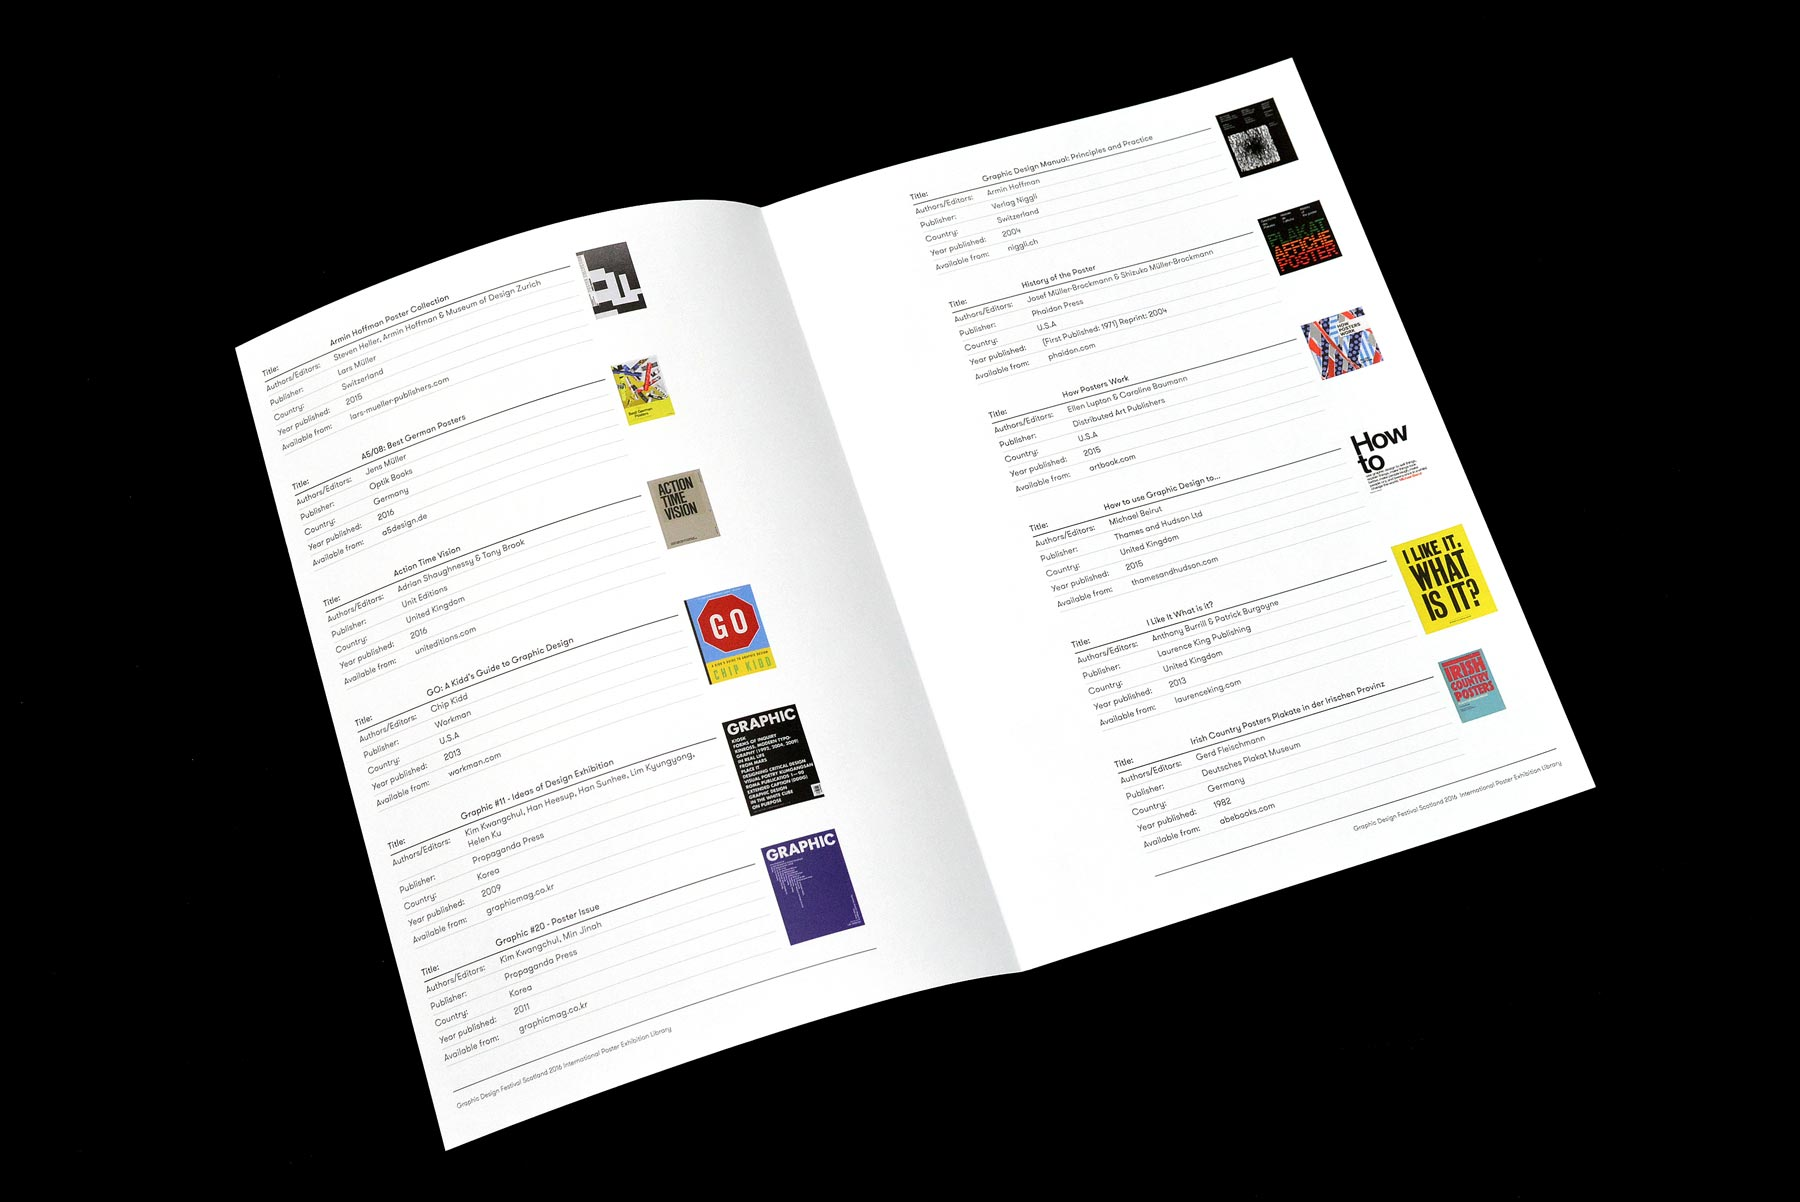 graphic-design-festival-scotland-2016-reading-list1